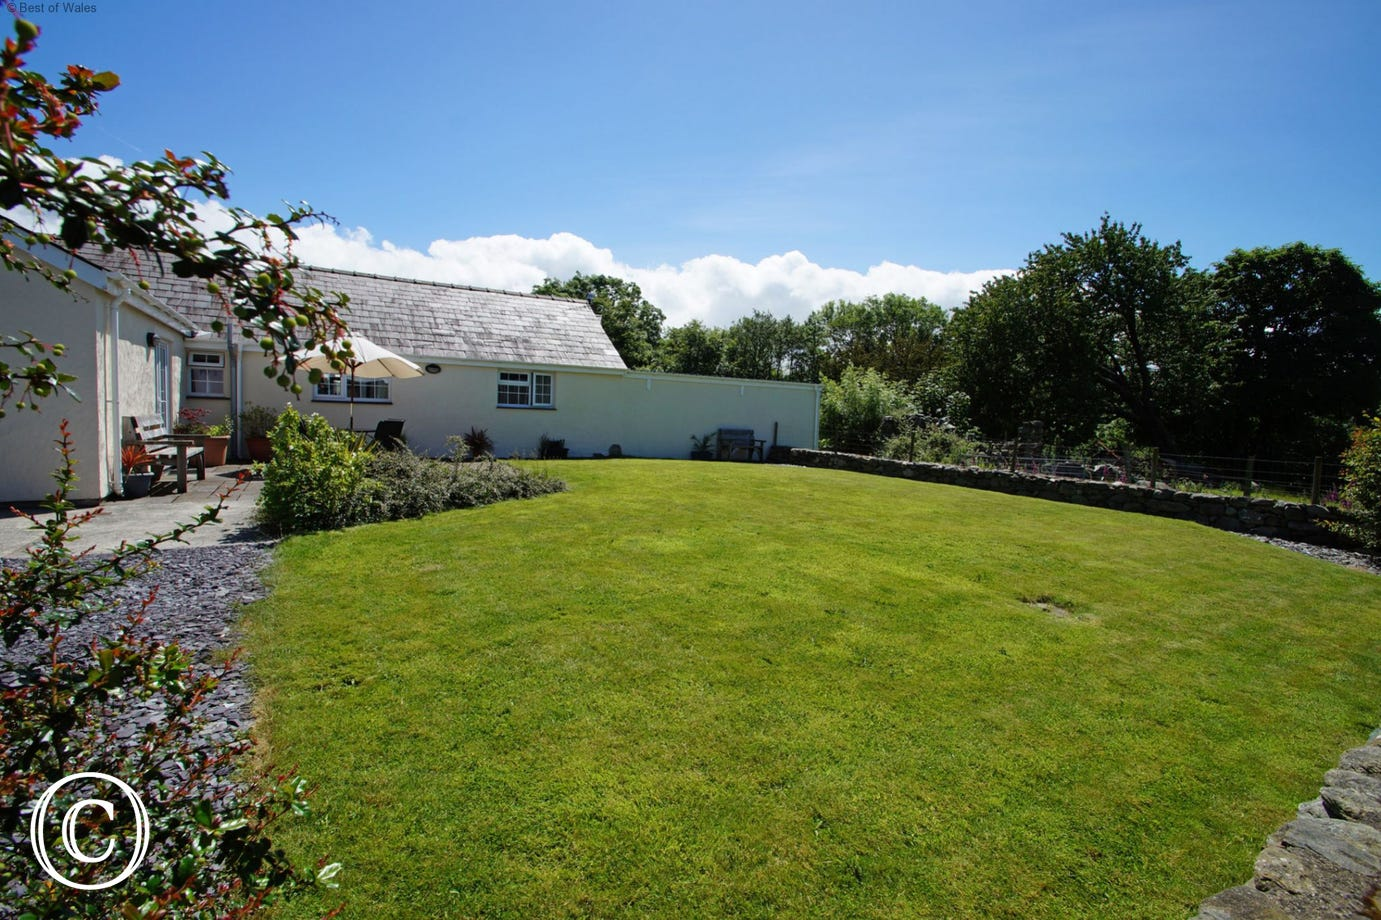 Your self catering Snowdonia cottage has a spacious, enclosed garden